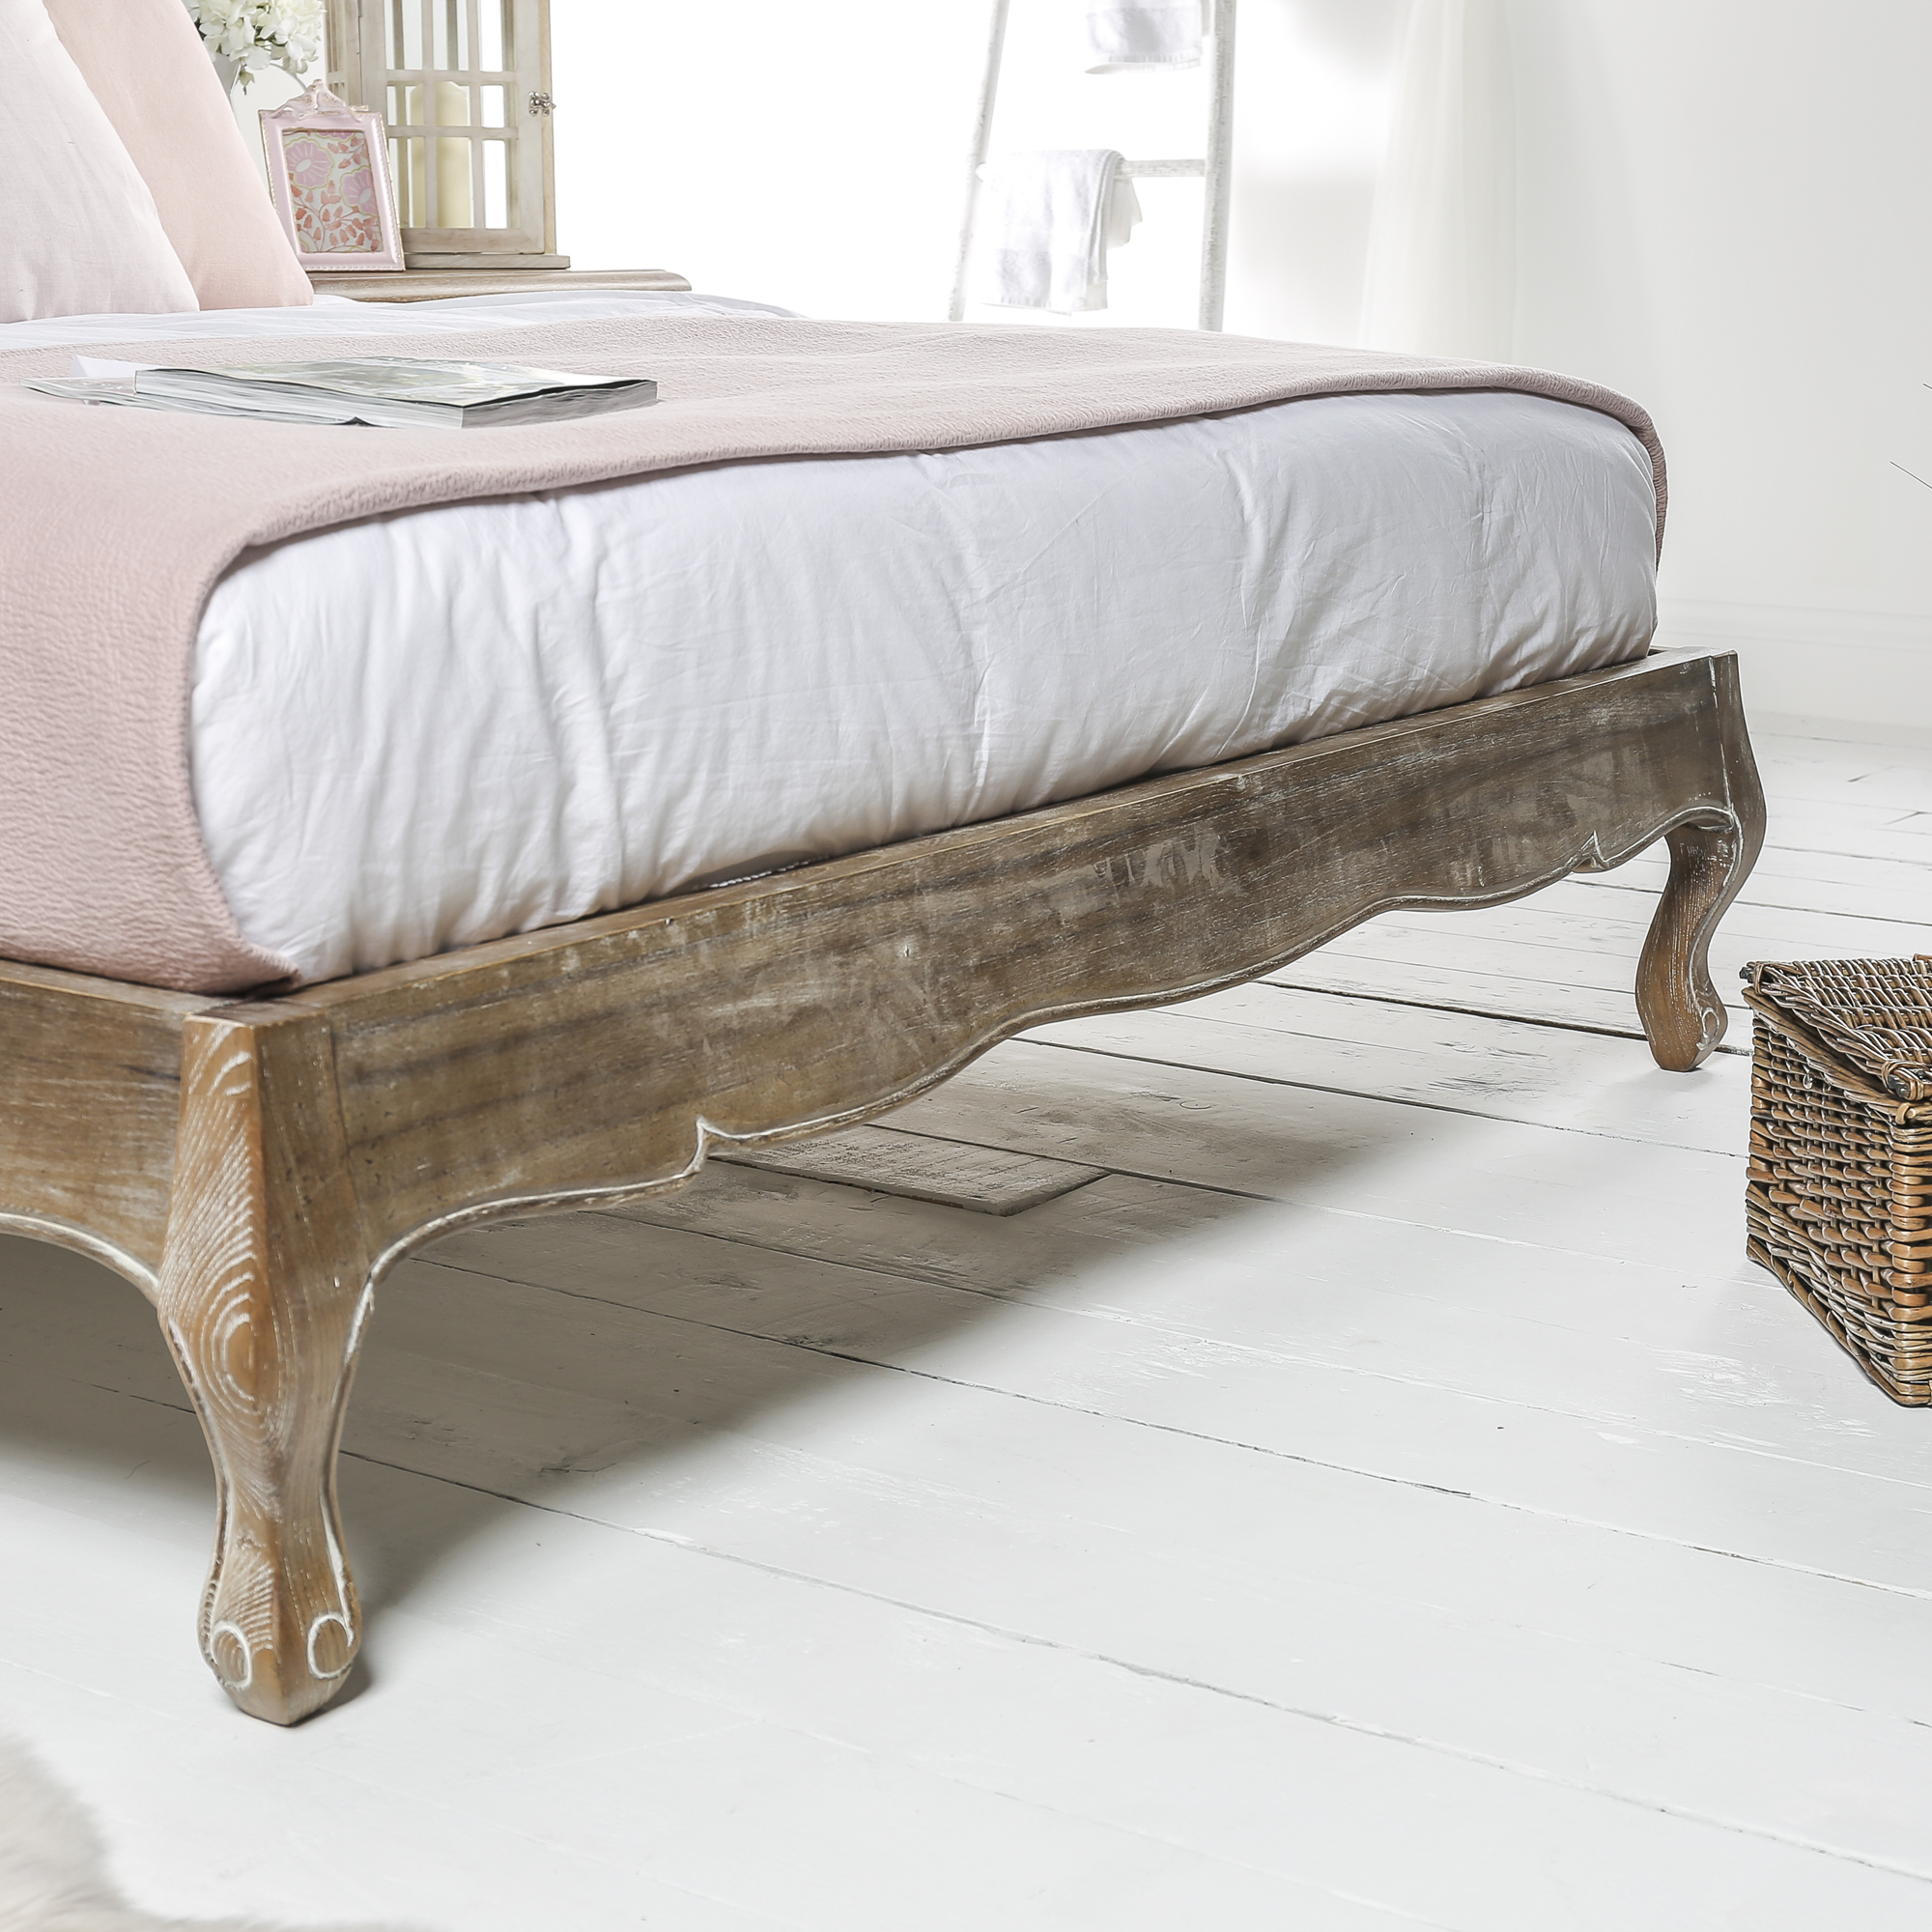 French Weathered Limed Ash Upholstered Low Foot Board Bed – Double Size